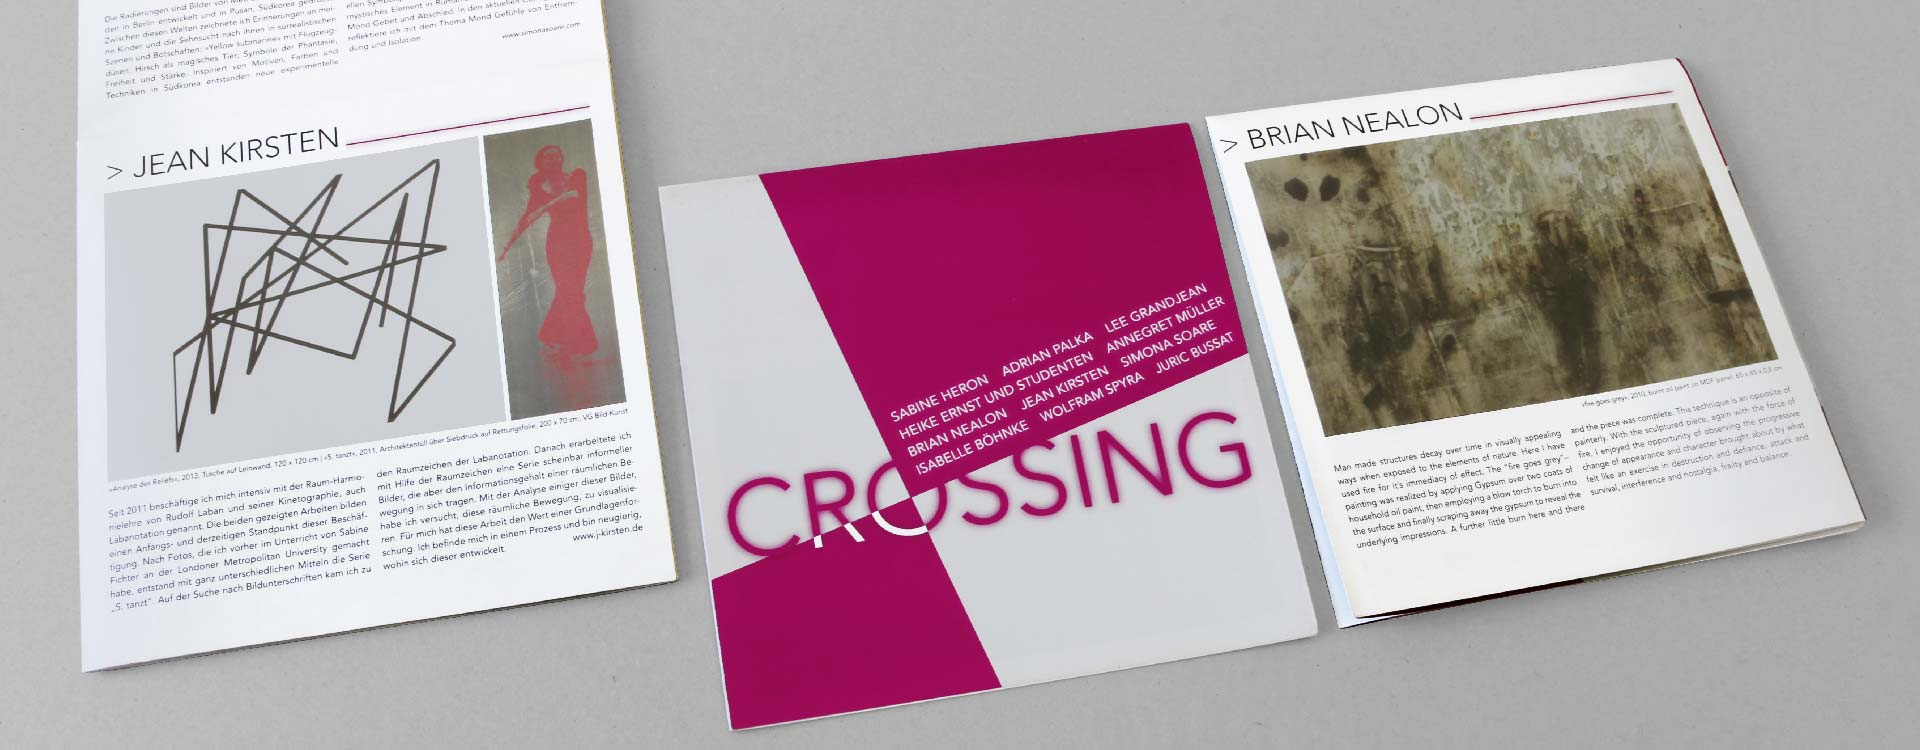 Leaflet for the exhibition Crossing in the Spreehöfen in Berlin Schöneweide; Design: Kattrin Richter | Graphic Design Studio